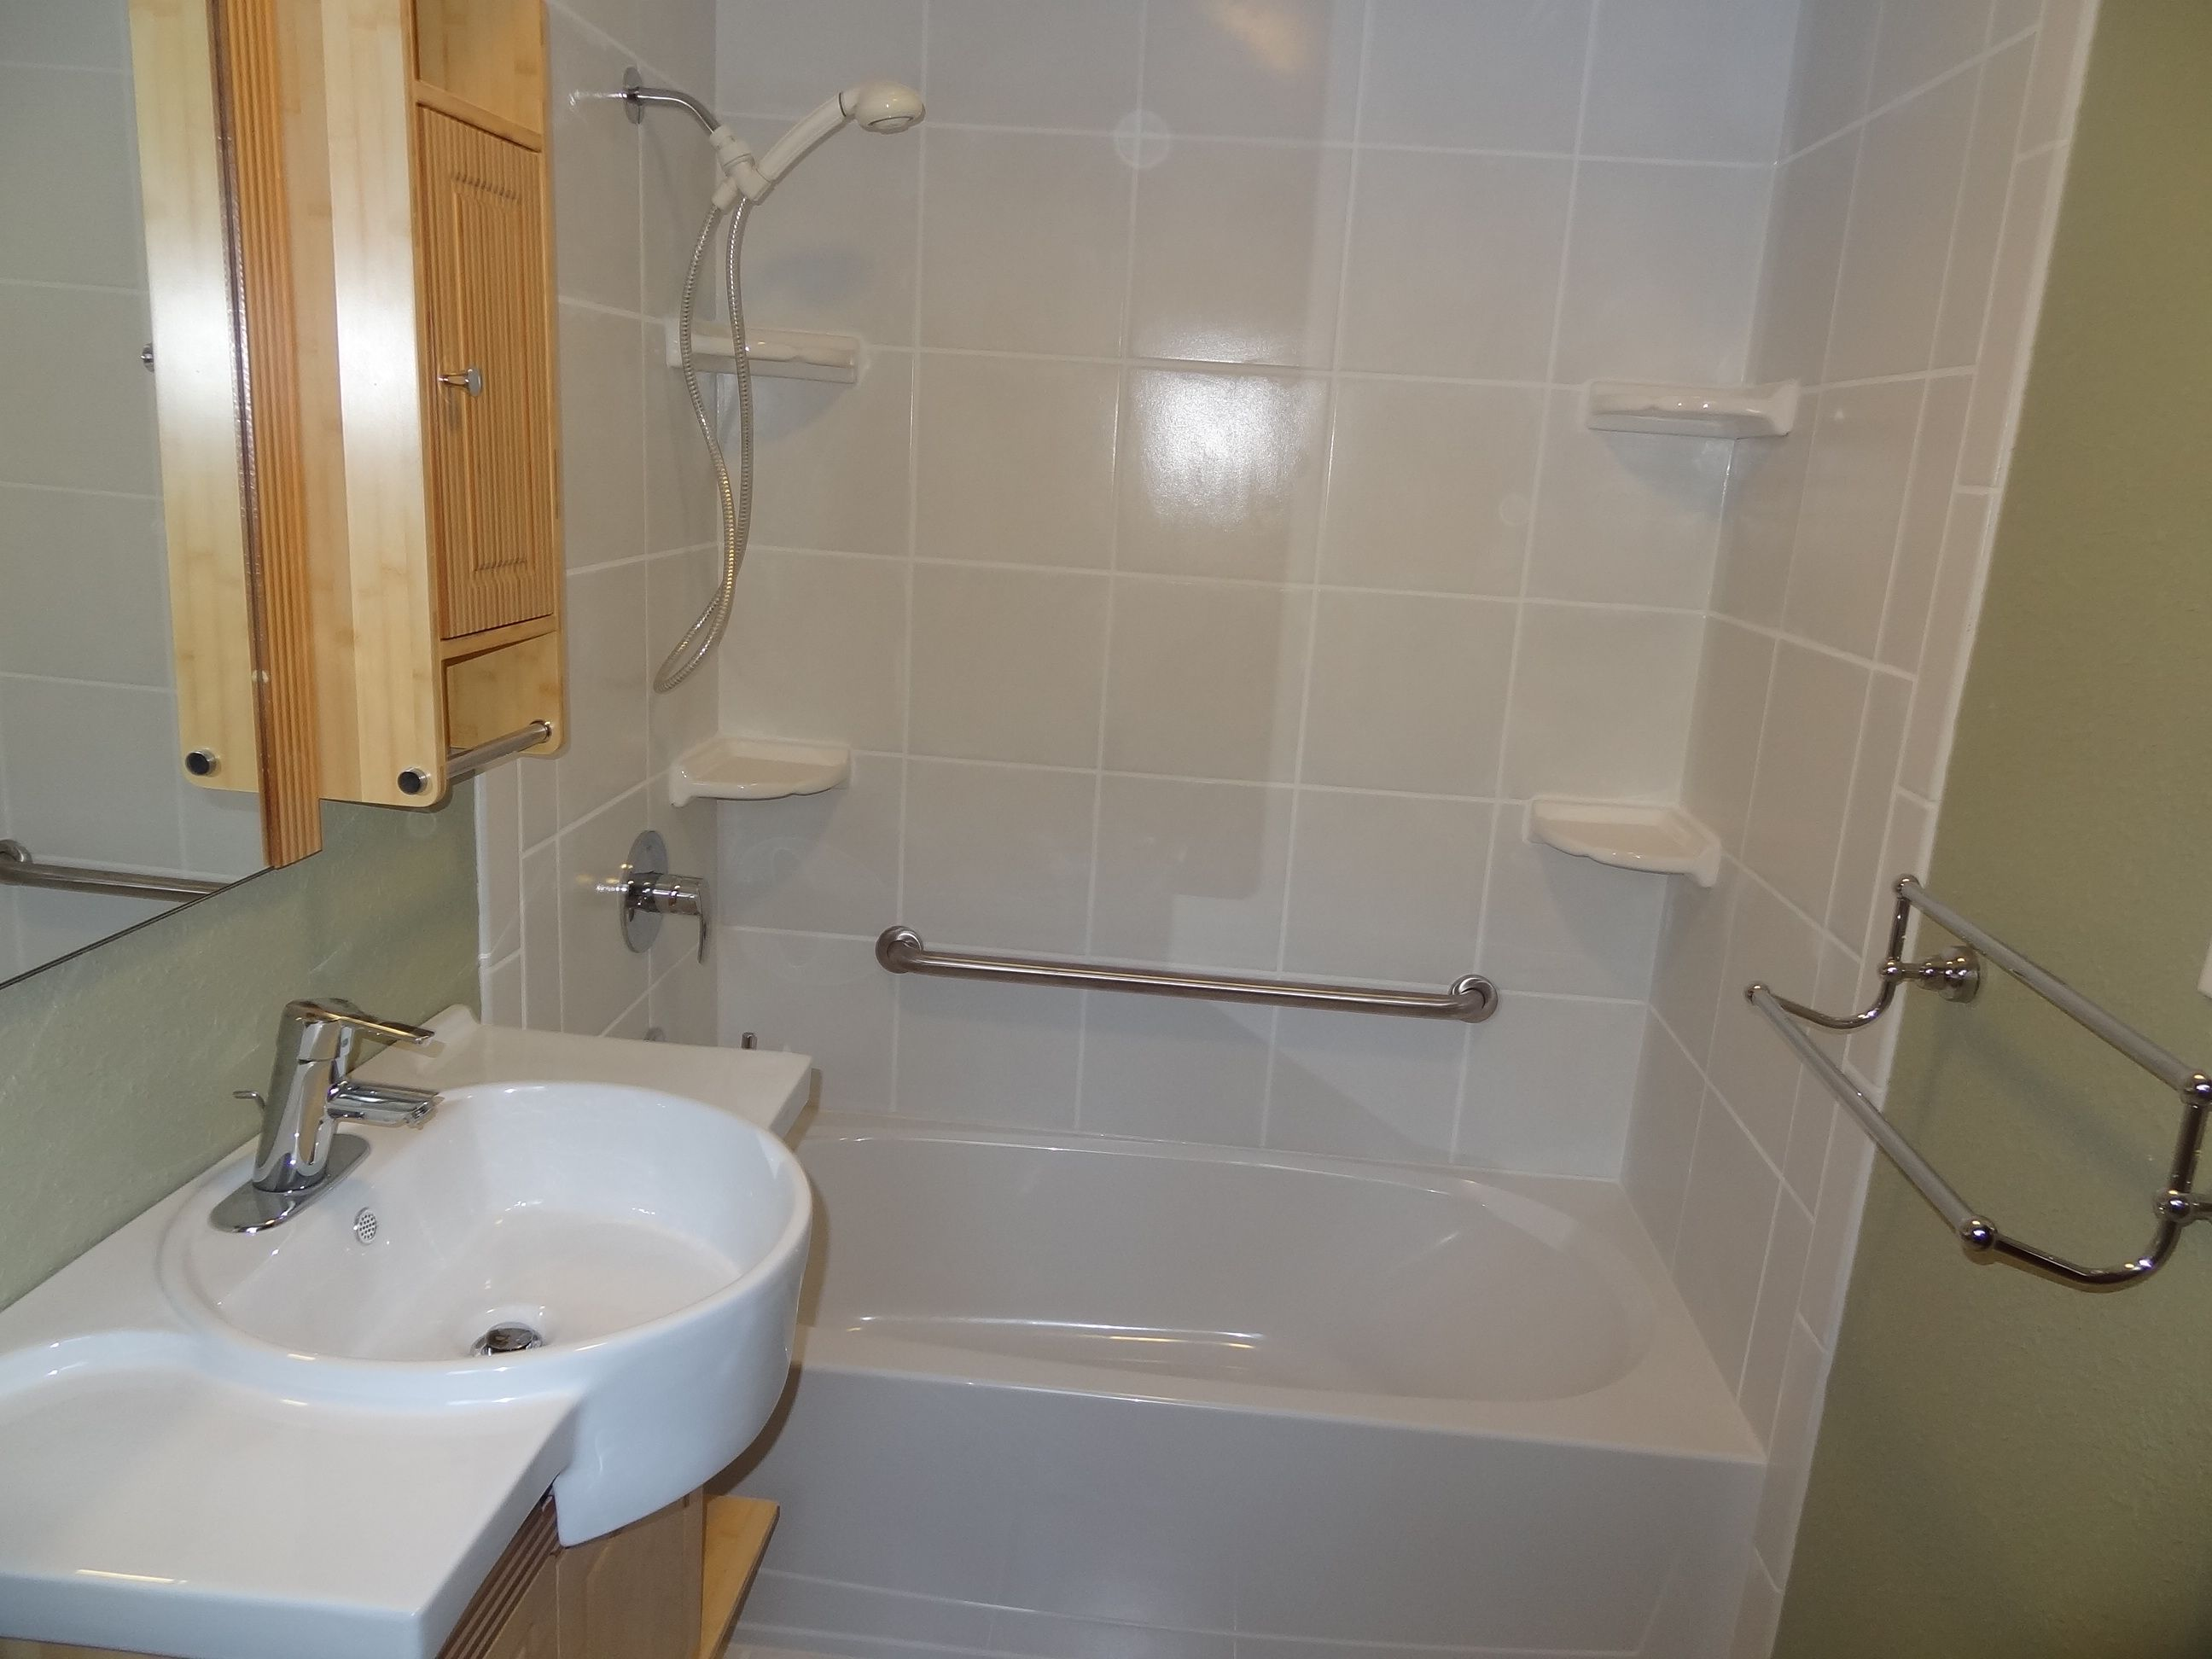 1000  images about Bathroom layout on Pinterest   Toilets  Vanities and Livingston. 1000  images about Bathroom layout on Pinterest   Toilets